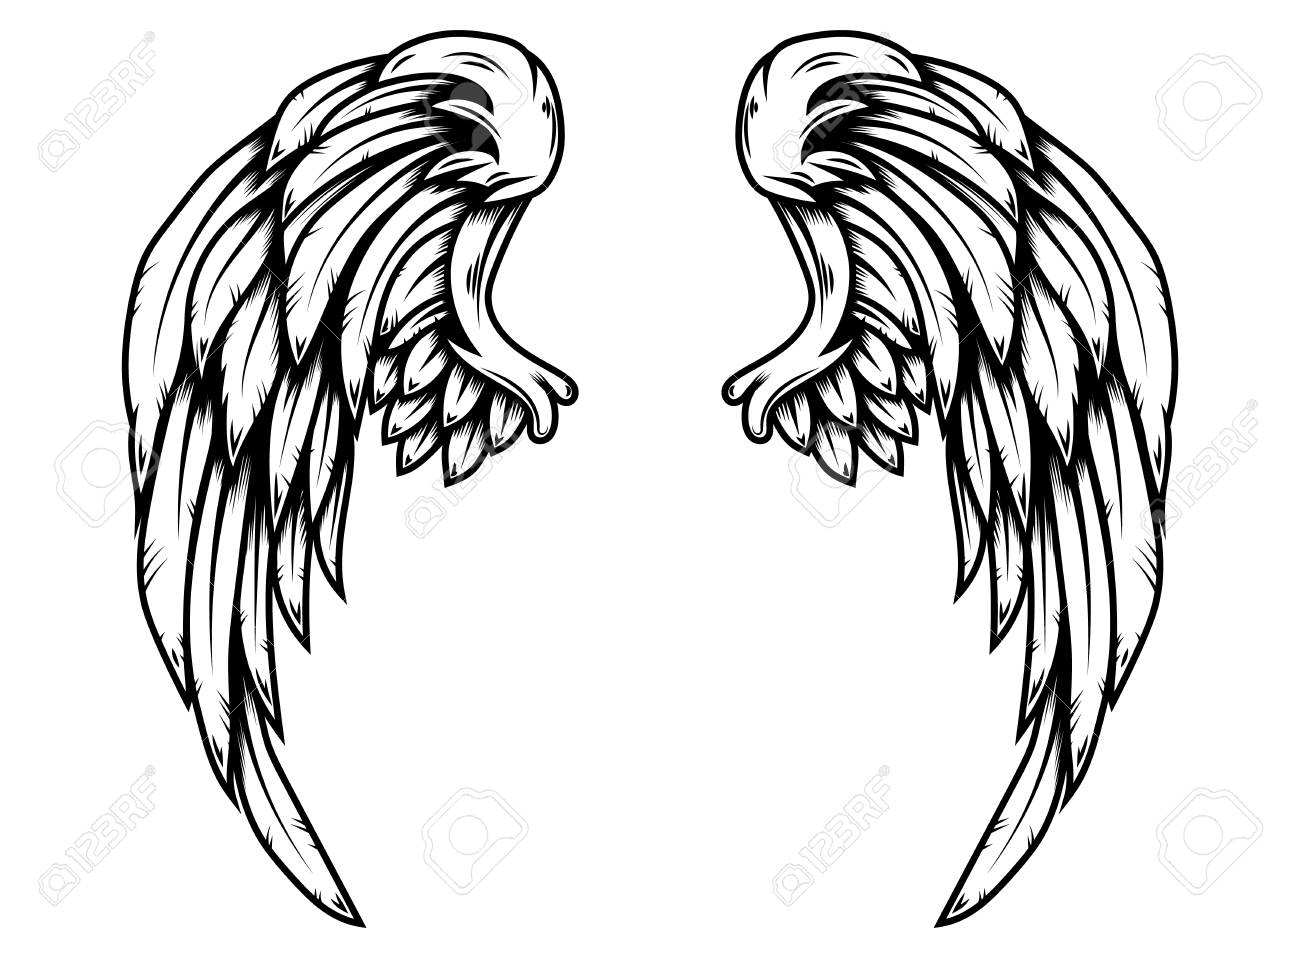 Eagle wings in tattoo style isolated on white background. Design element for poster, t shirt, card, emblem, sign, badge. Vector illustration - 123759263